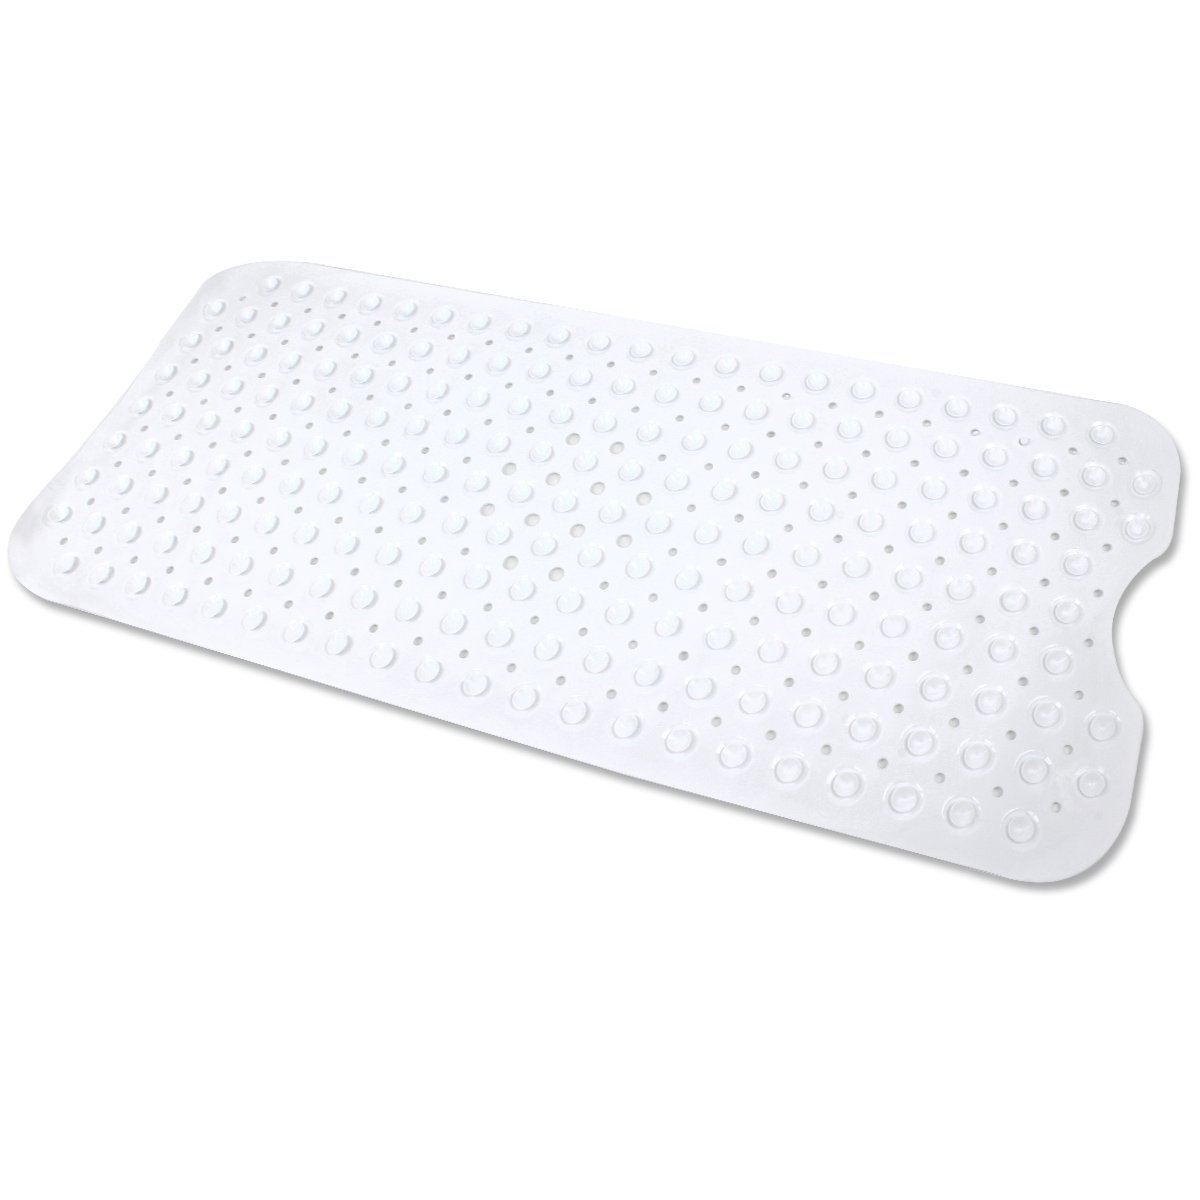 Ezeso Bath and Shower Bathtub Mat PVC Anti-Bacterial Anti-Slip-Resistant Modern Bath Mats With Long Non-Slip Suction Cups (White) EZESO CO. LTD